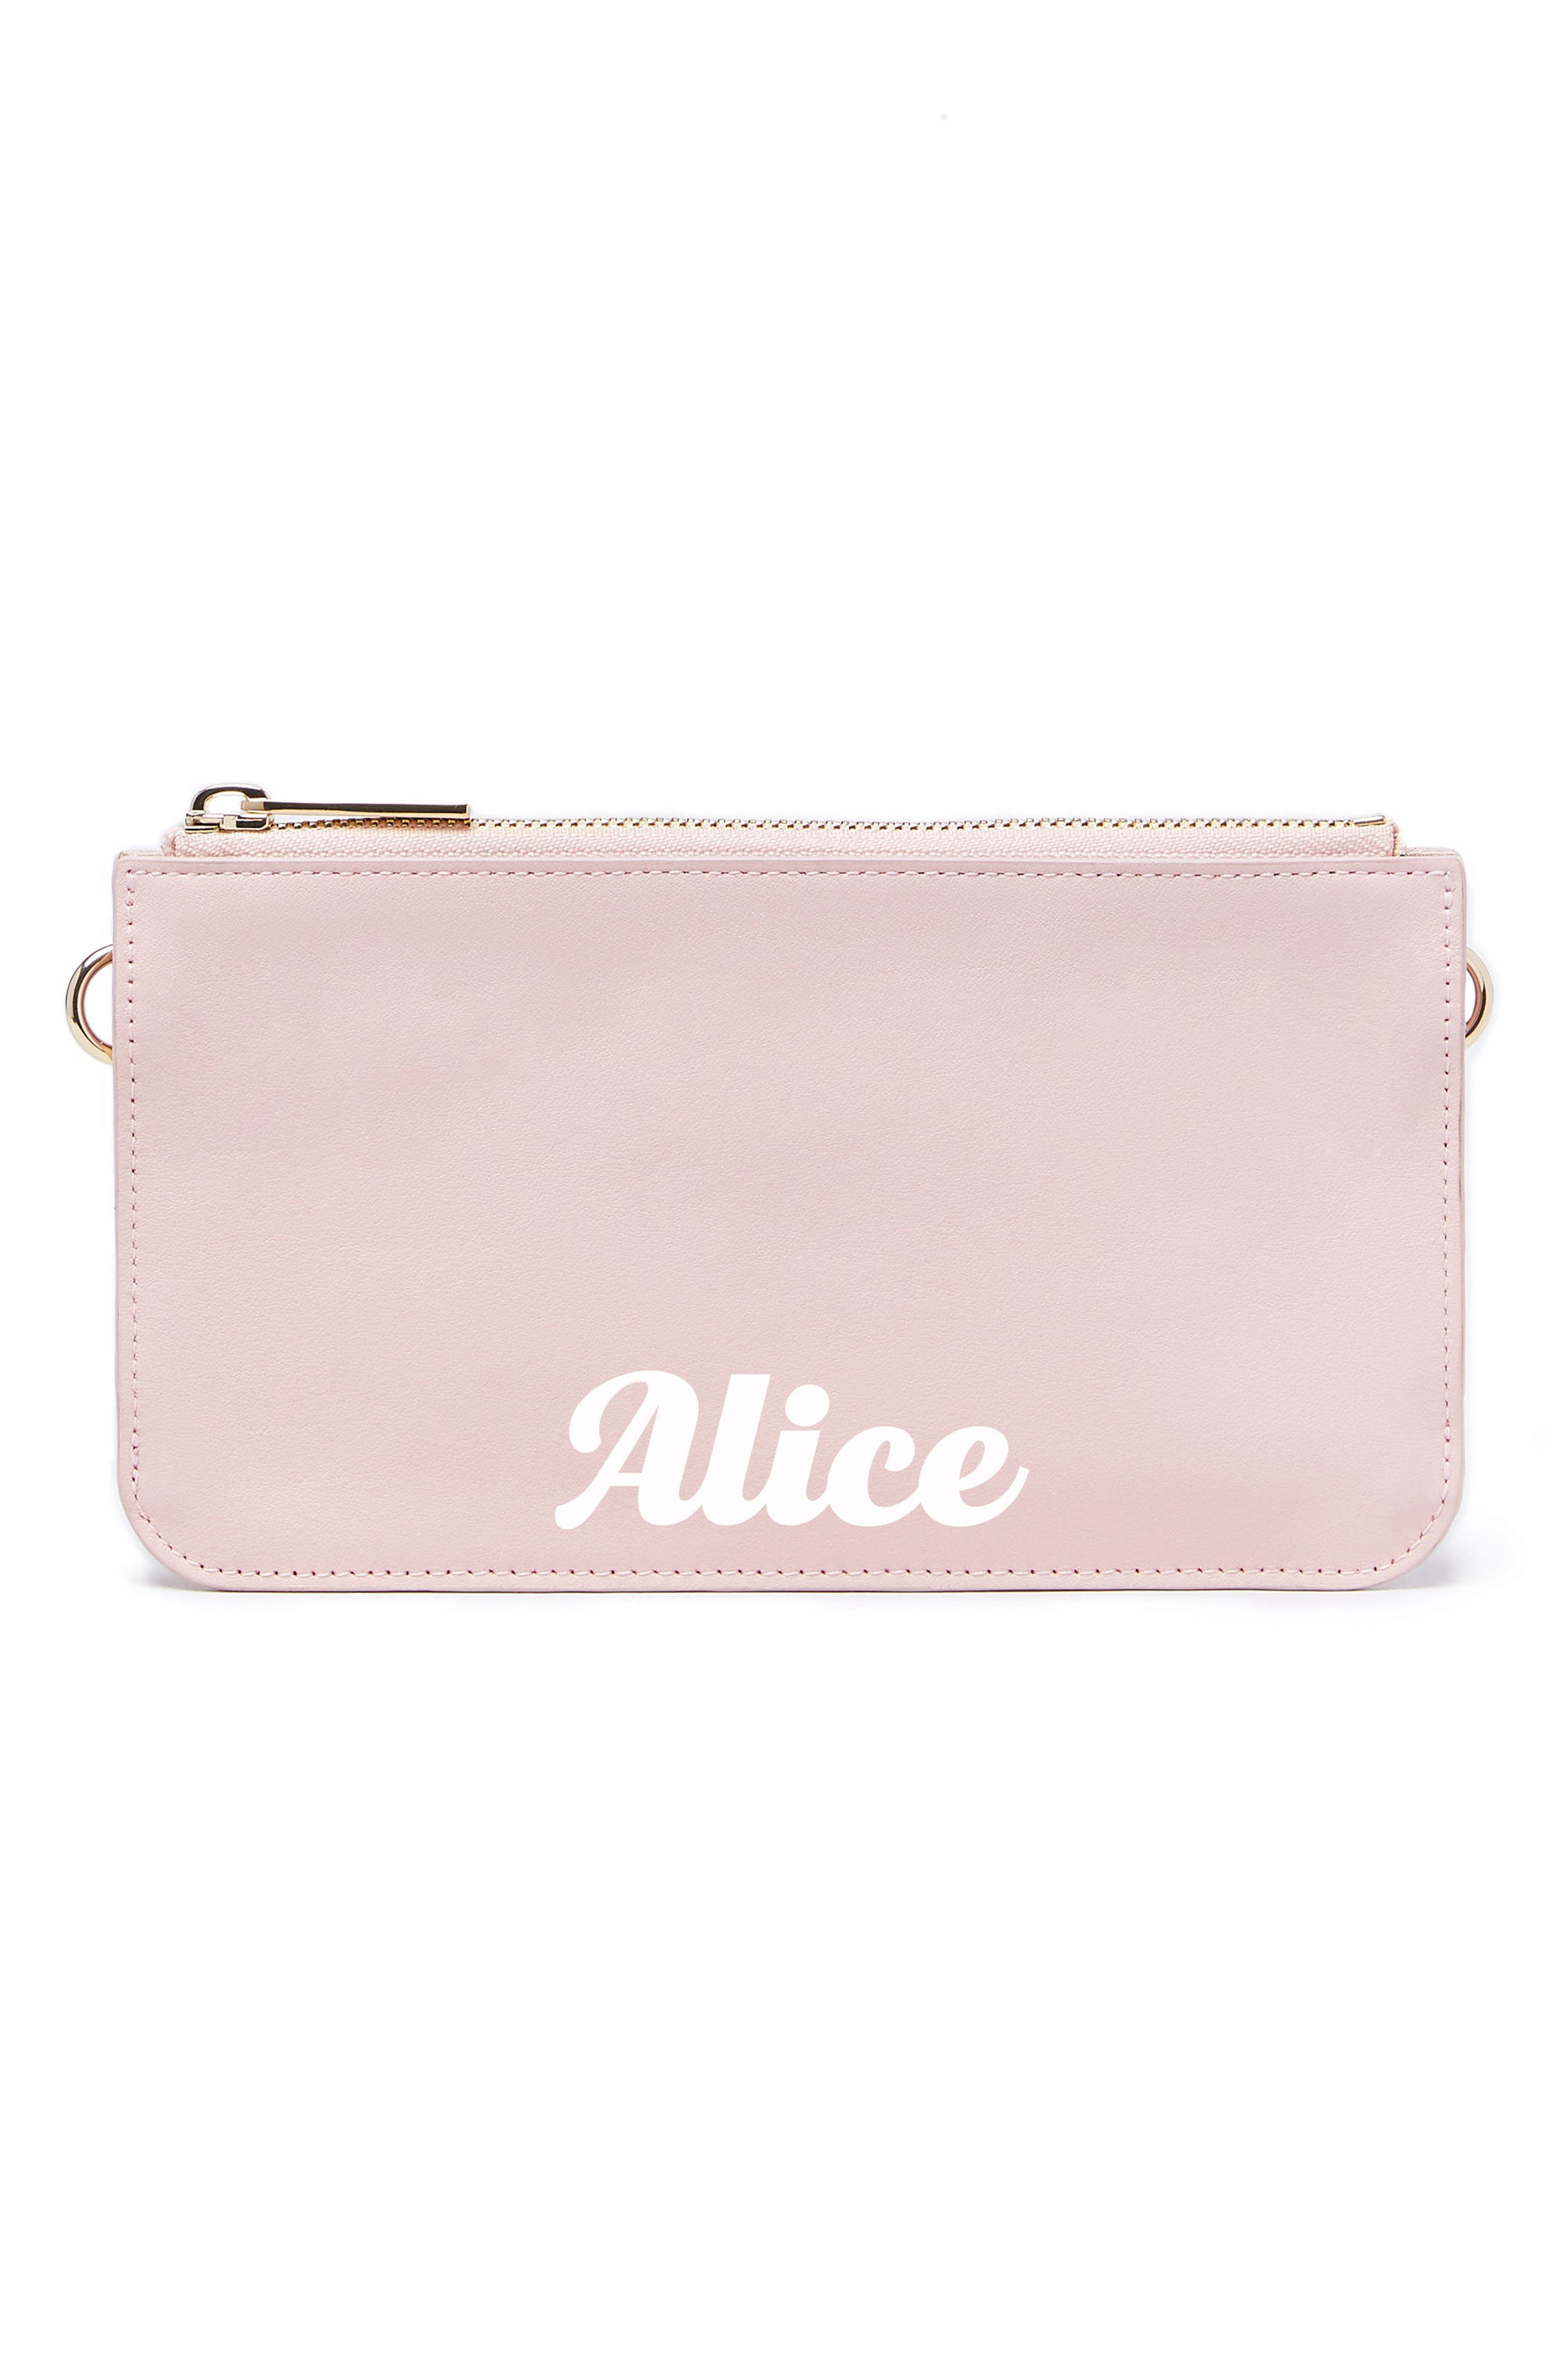 Personalized Leather Zip Pouch,                         Main,                         color, Cotton Candy